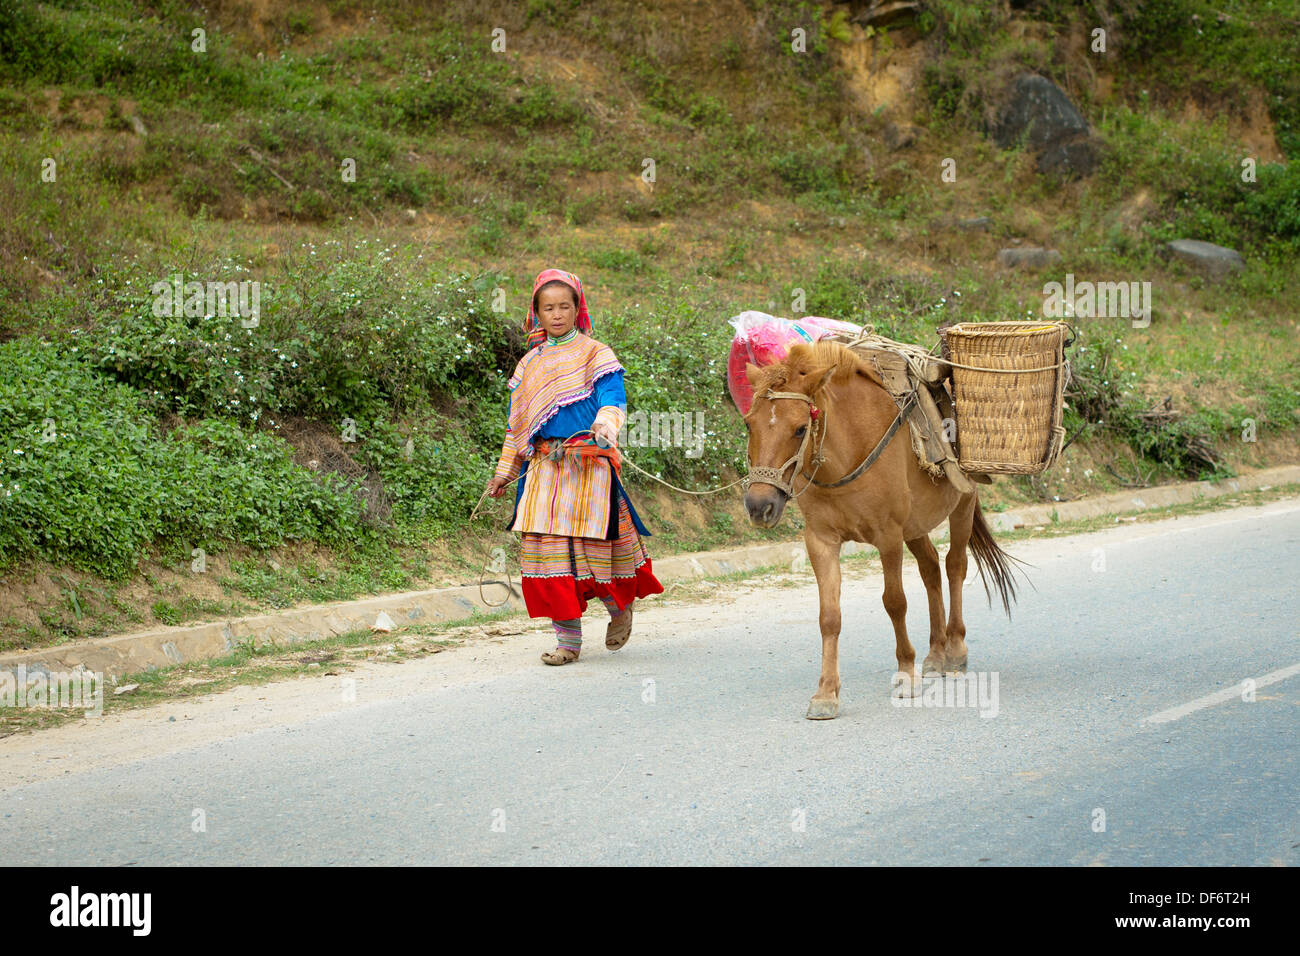 A Flower Hmong woman and her packhorse walk down the street in Bac Ha, Lao Cai Province, Vietnam. - Stock Image